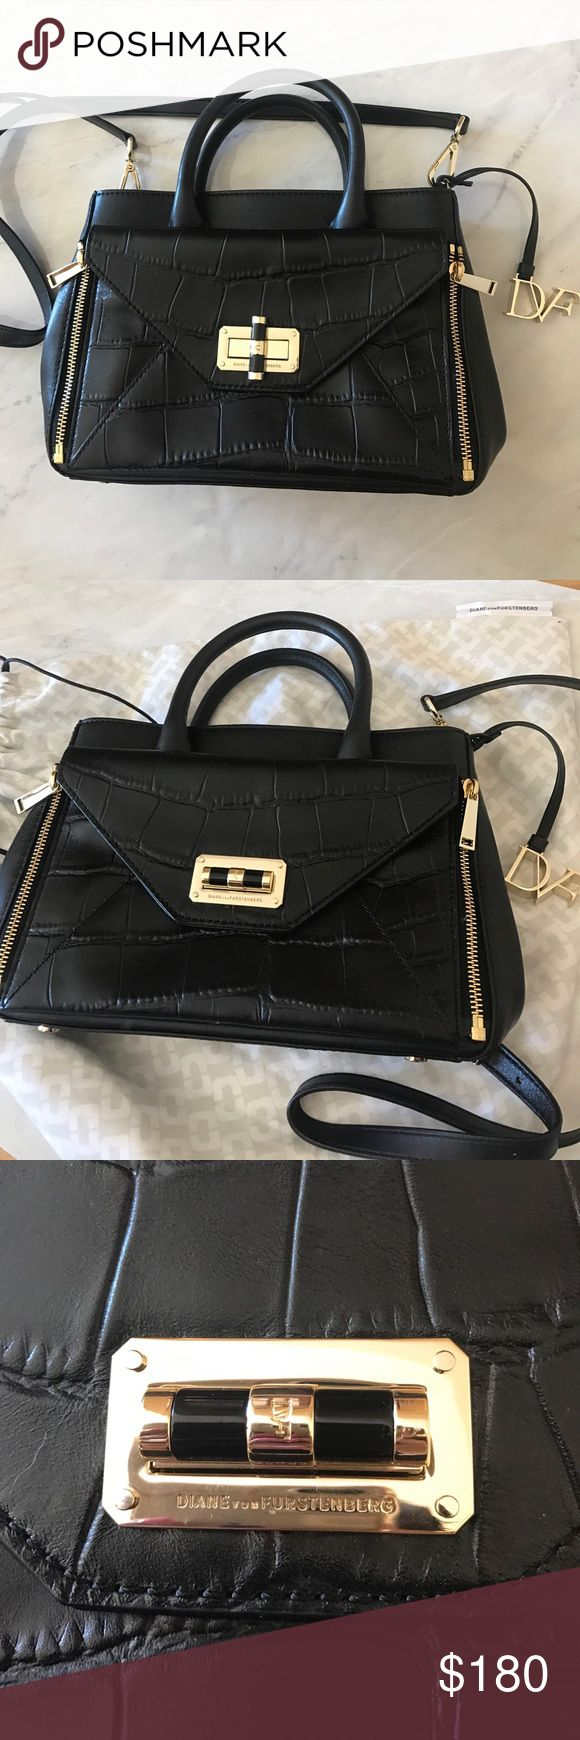 Diane Von Furstenberg mini cross body bag DVF bag, comes with dust bag. Black with gold hardware. Great deal in a great bag! Only used once, perfect confusion. Comes with Card of Authenticity. 8inches x 11inches x 5inches wide. Tags are all in the bag. Diane Von Furstenberg Bags Crossbody Bags